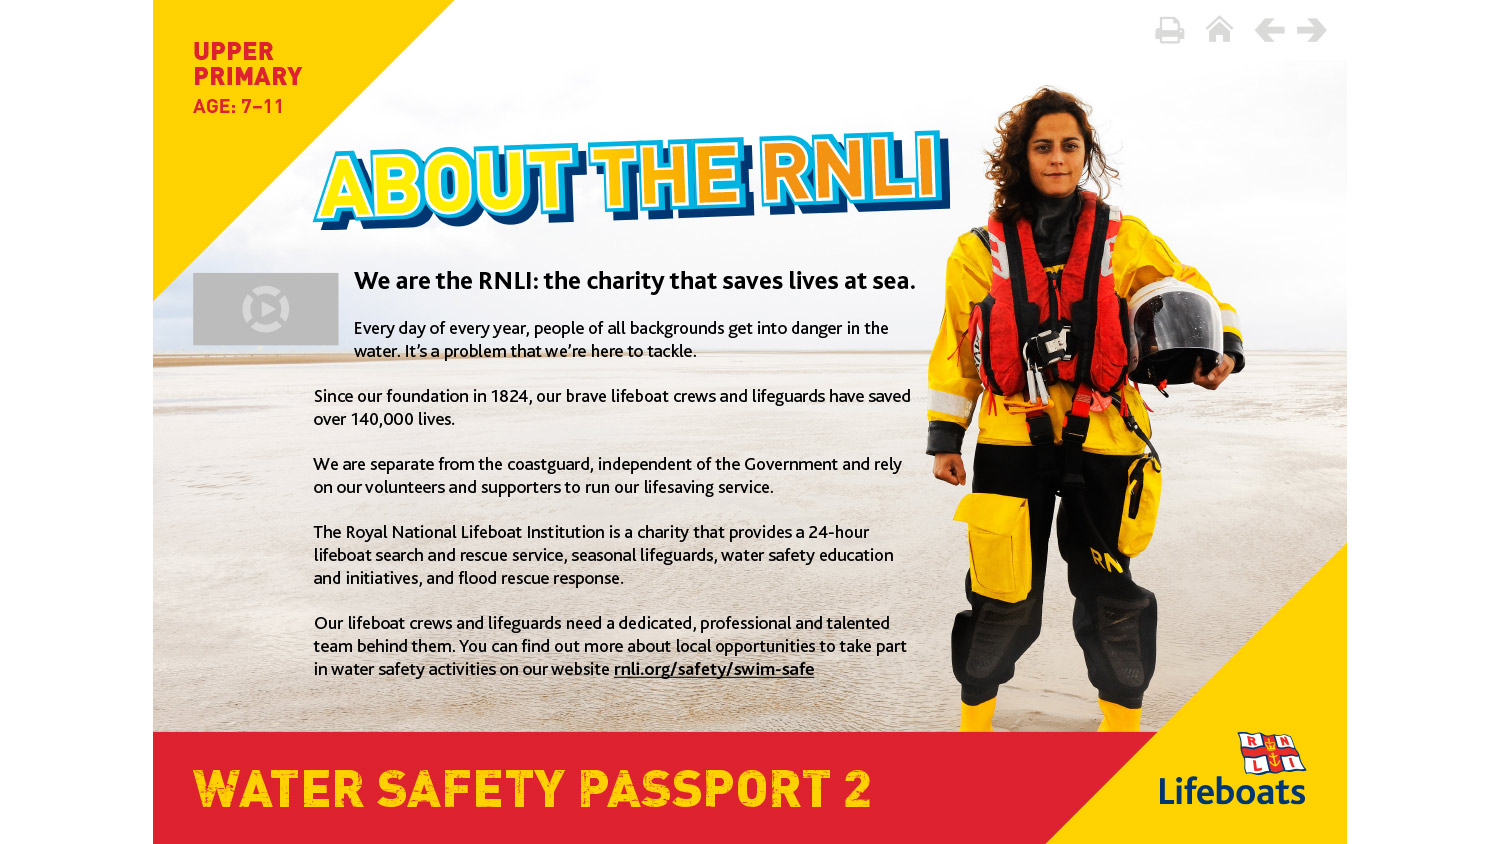 RNLI Water Safety Passport 2 activity slides